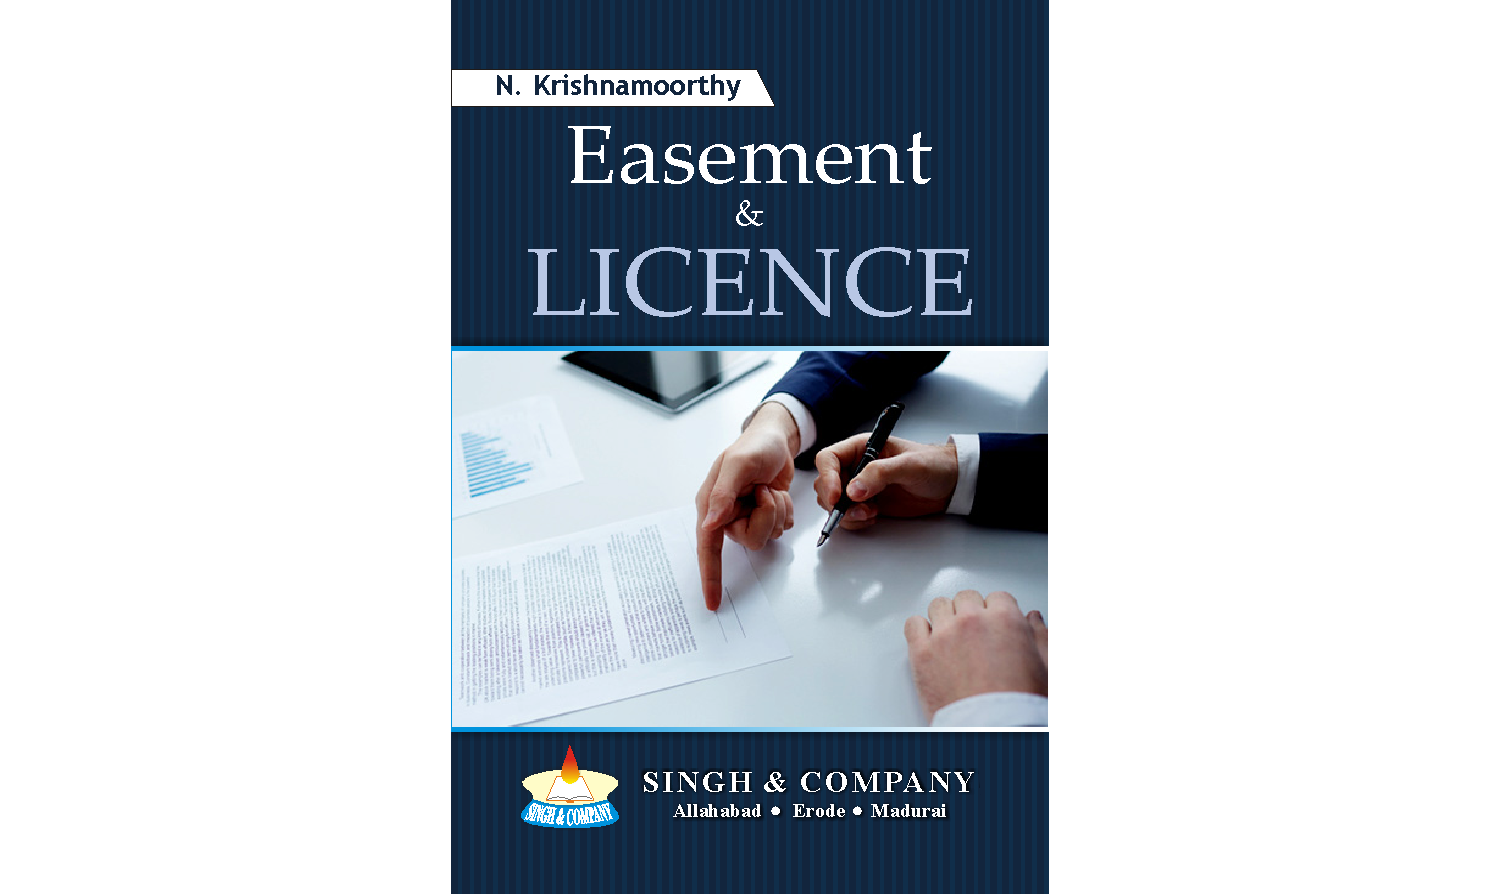 Easement & Licence